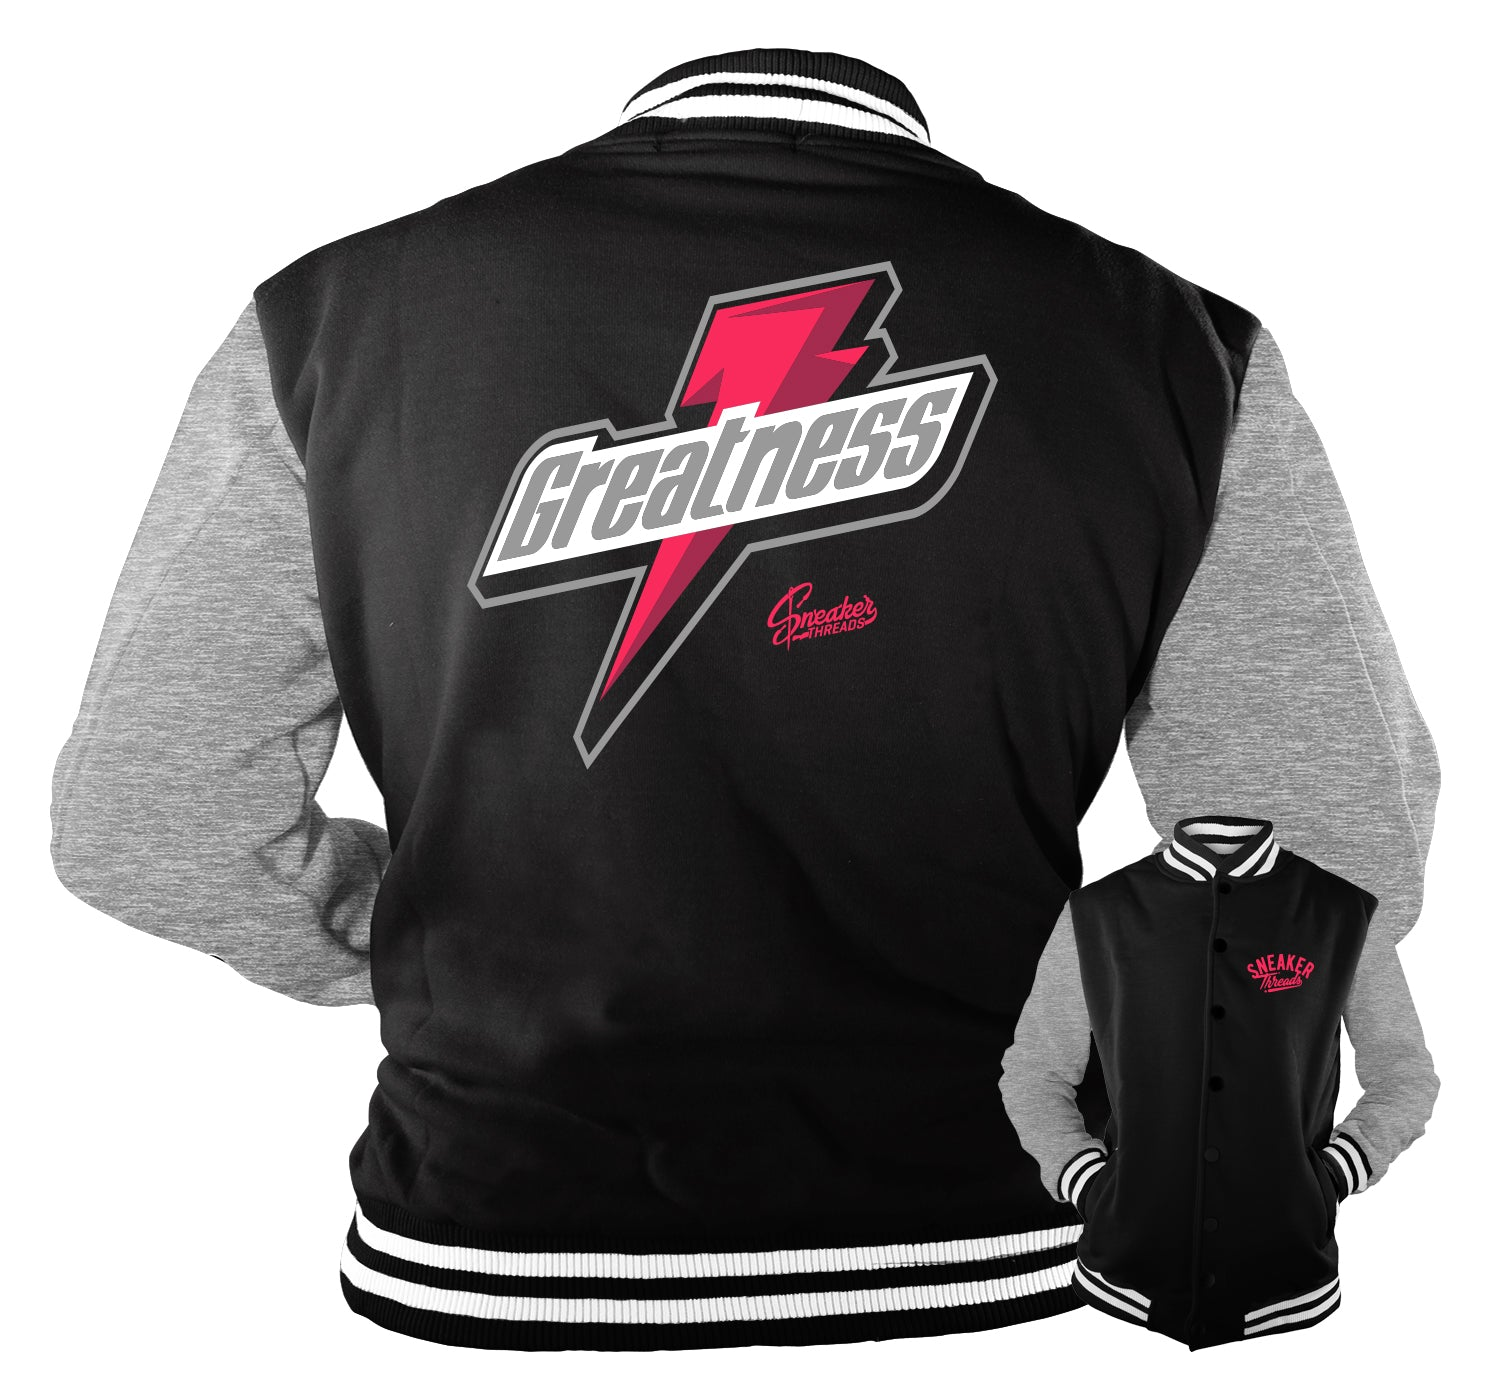 Jordan 11 Adapt Greatness Jacket